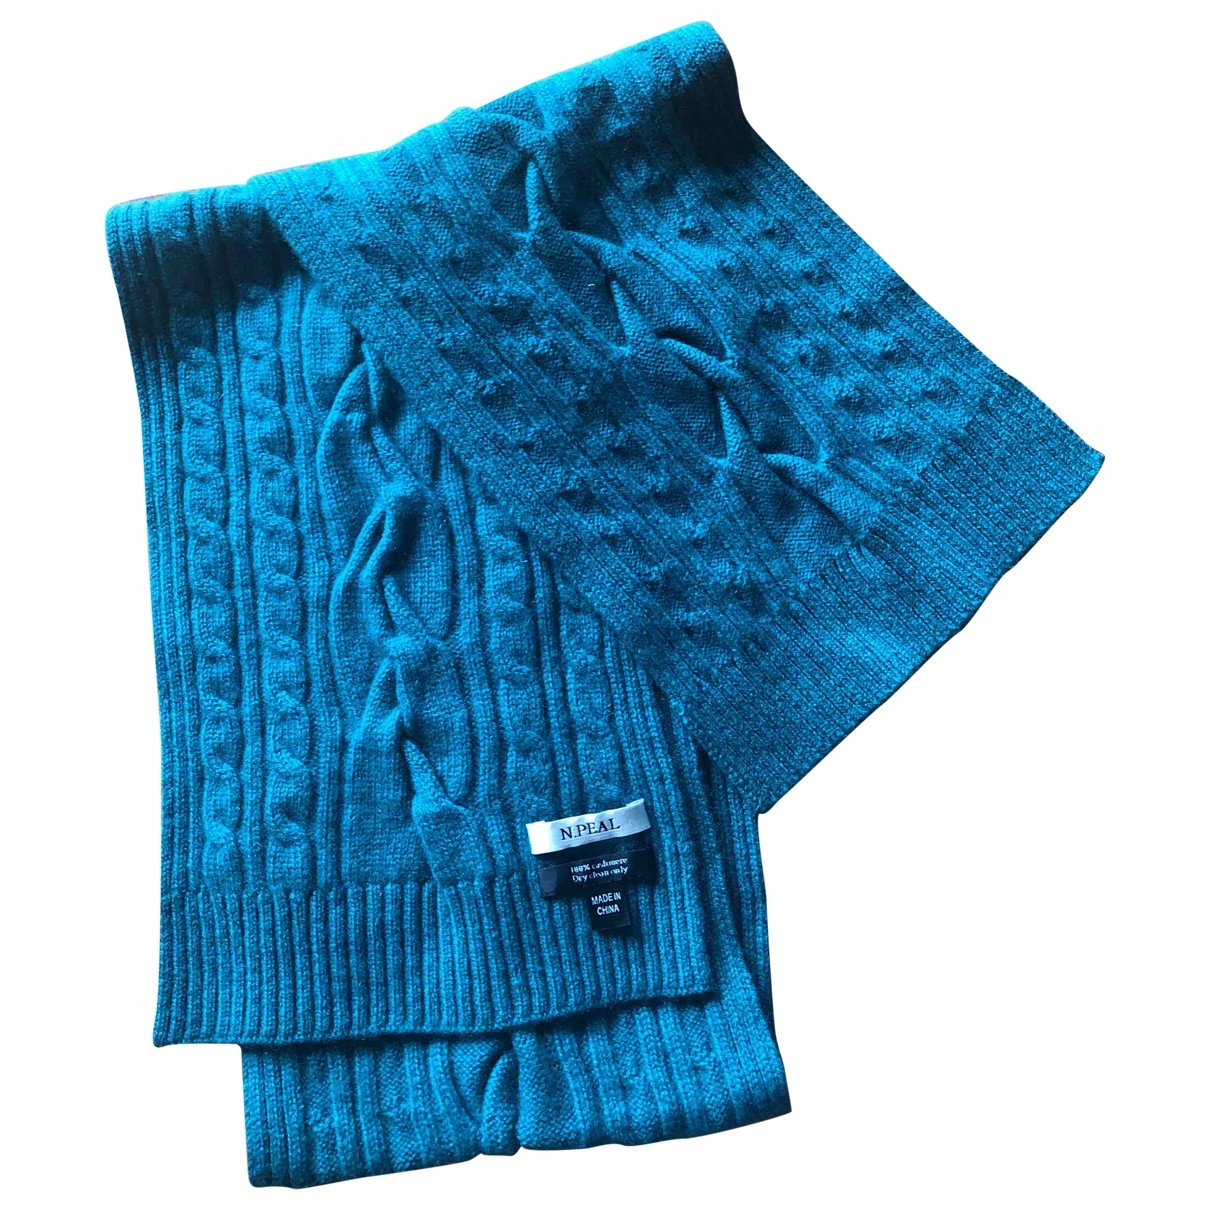 N. Peal \N Turquoise Cashmere scarf for Women \N